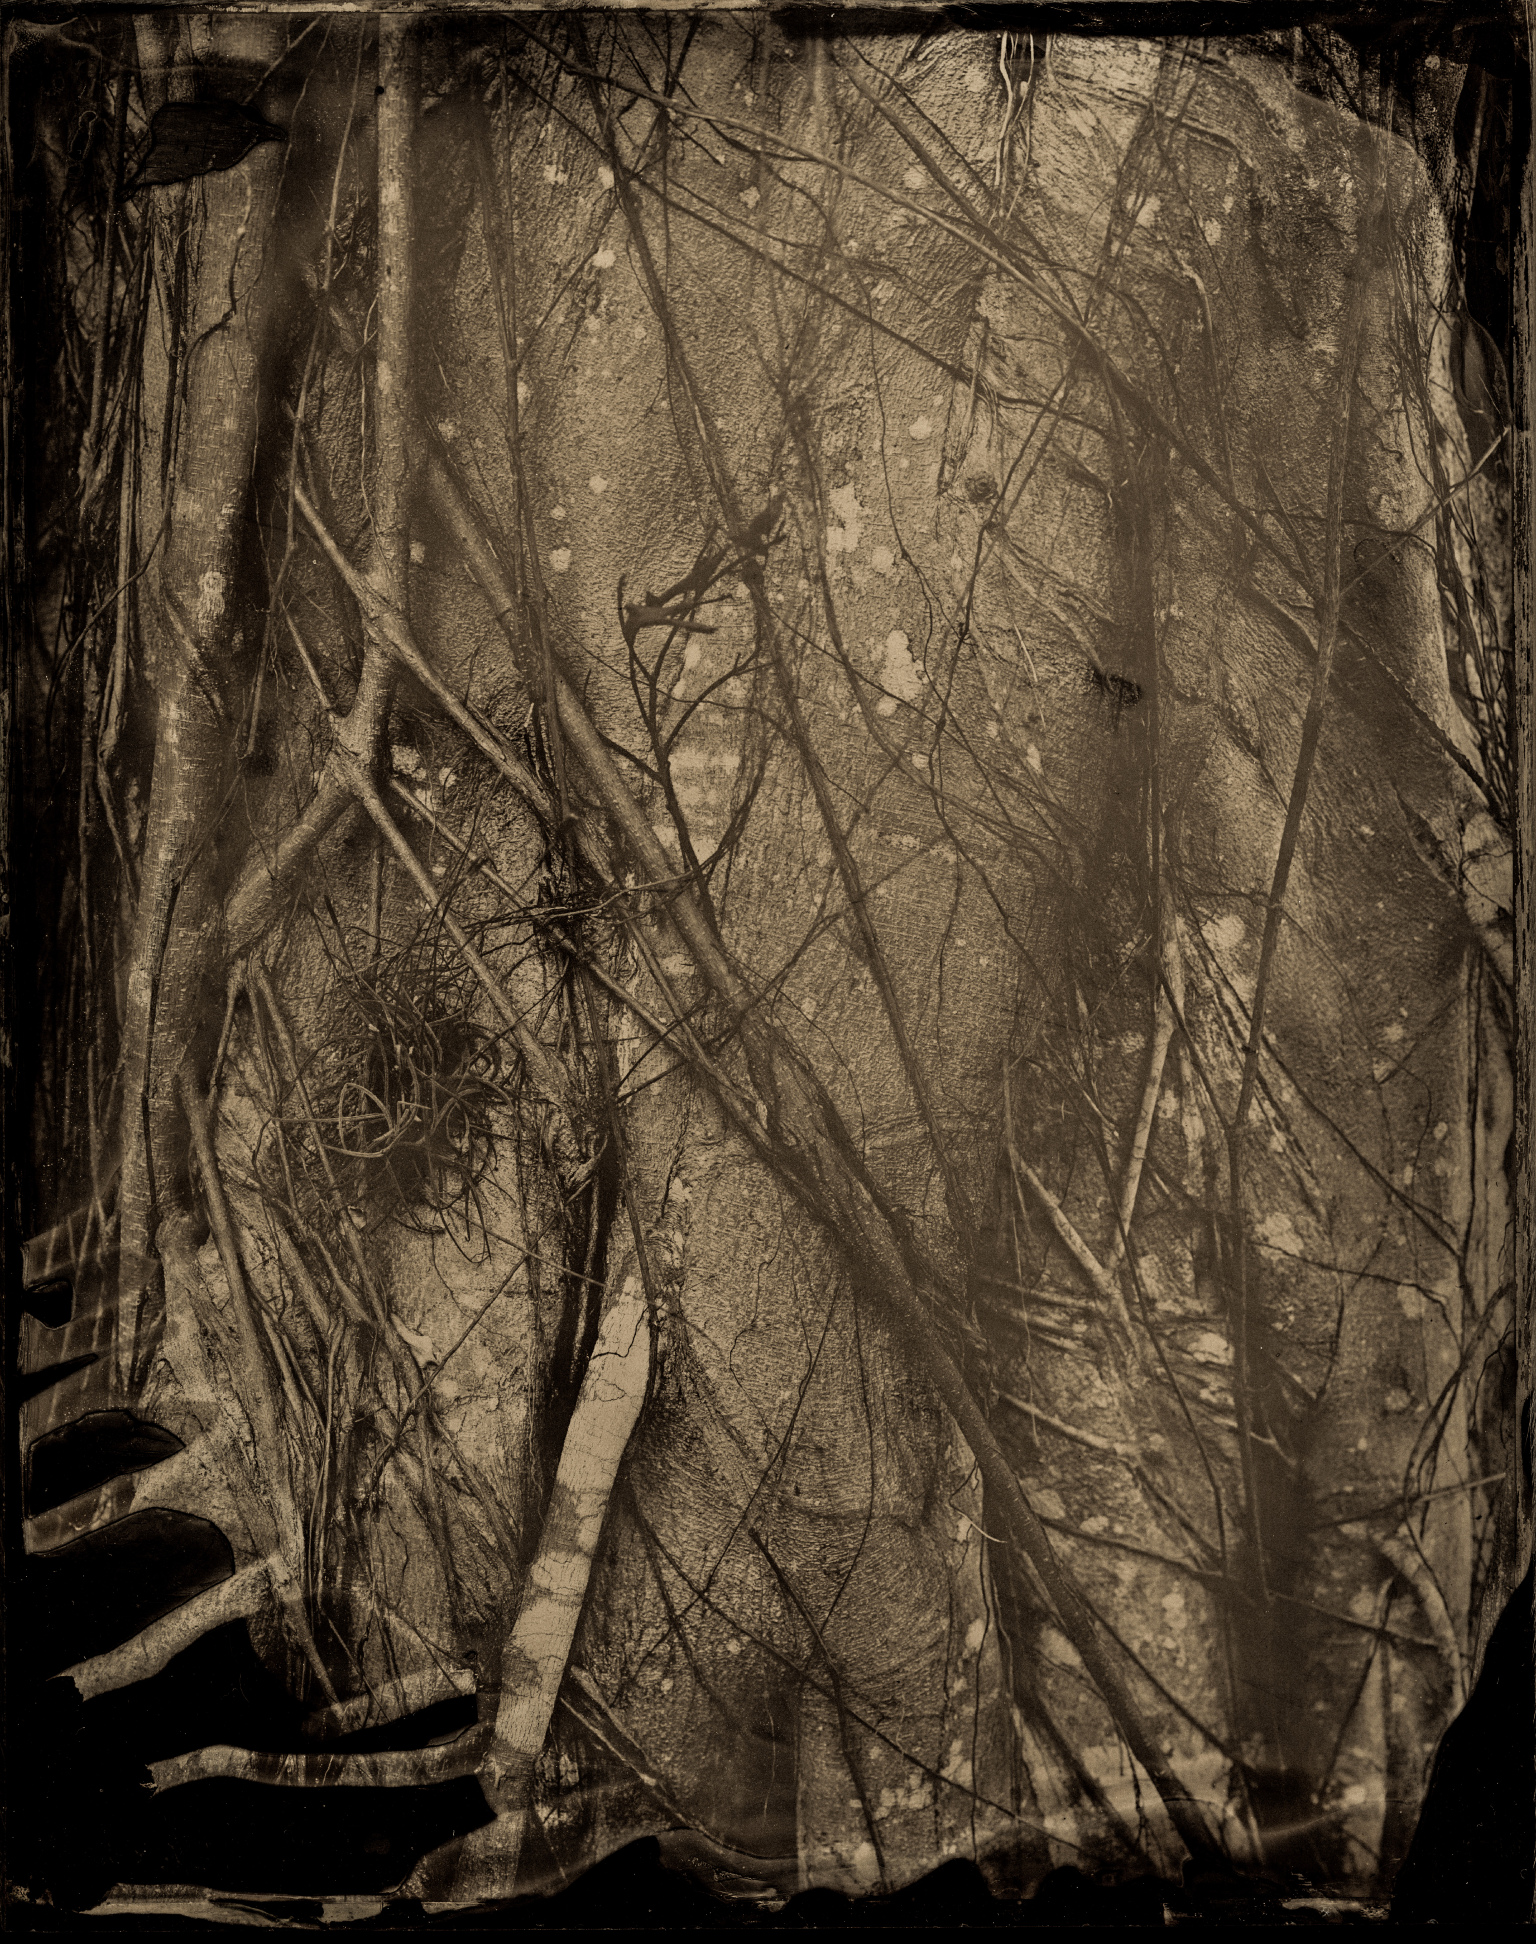 Vascular Impulse, ambrotype original, archival pigment print, 40 in. x 50 in., 2018